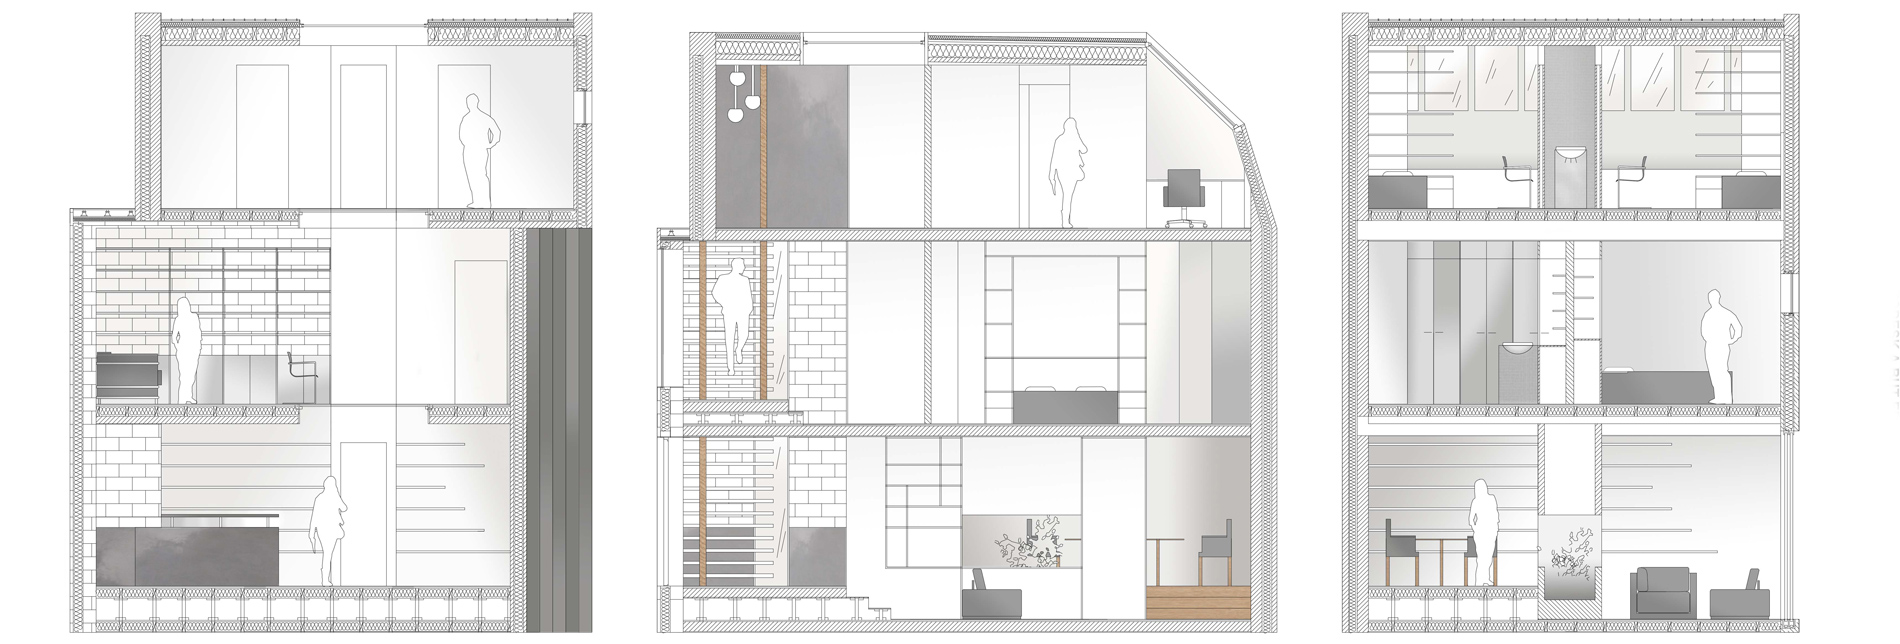 Coupes-1-2-&-3-archi-int